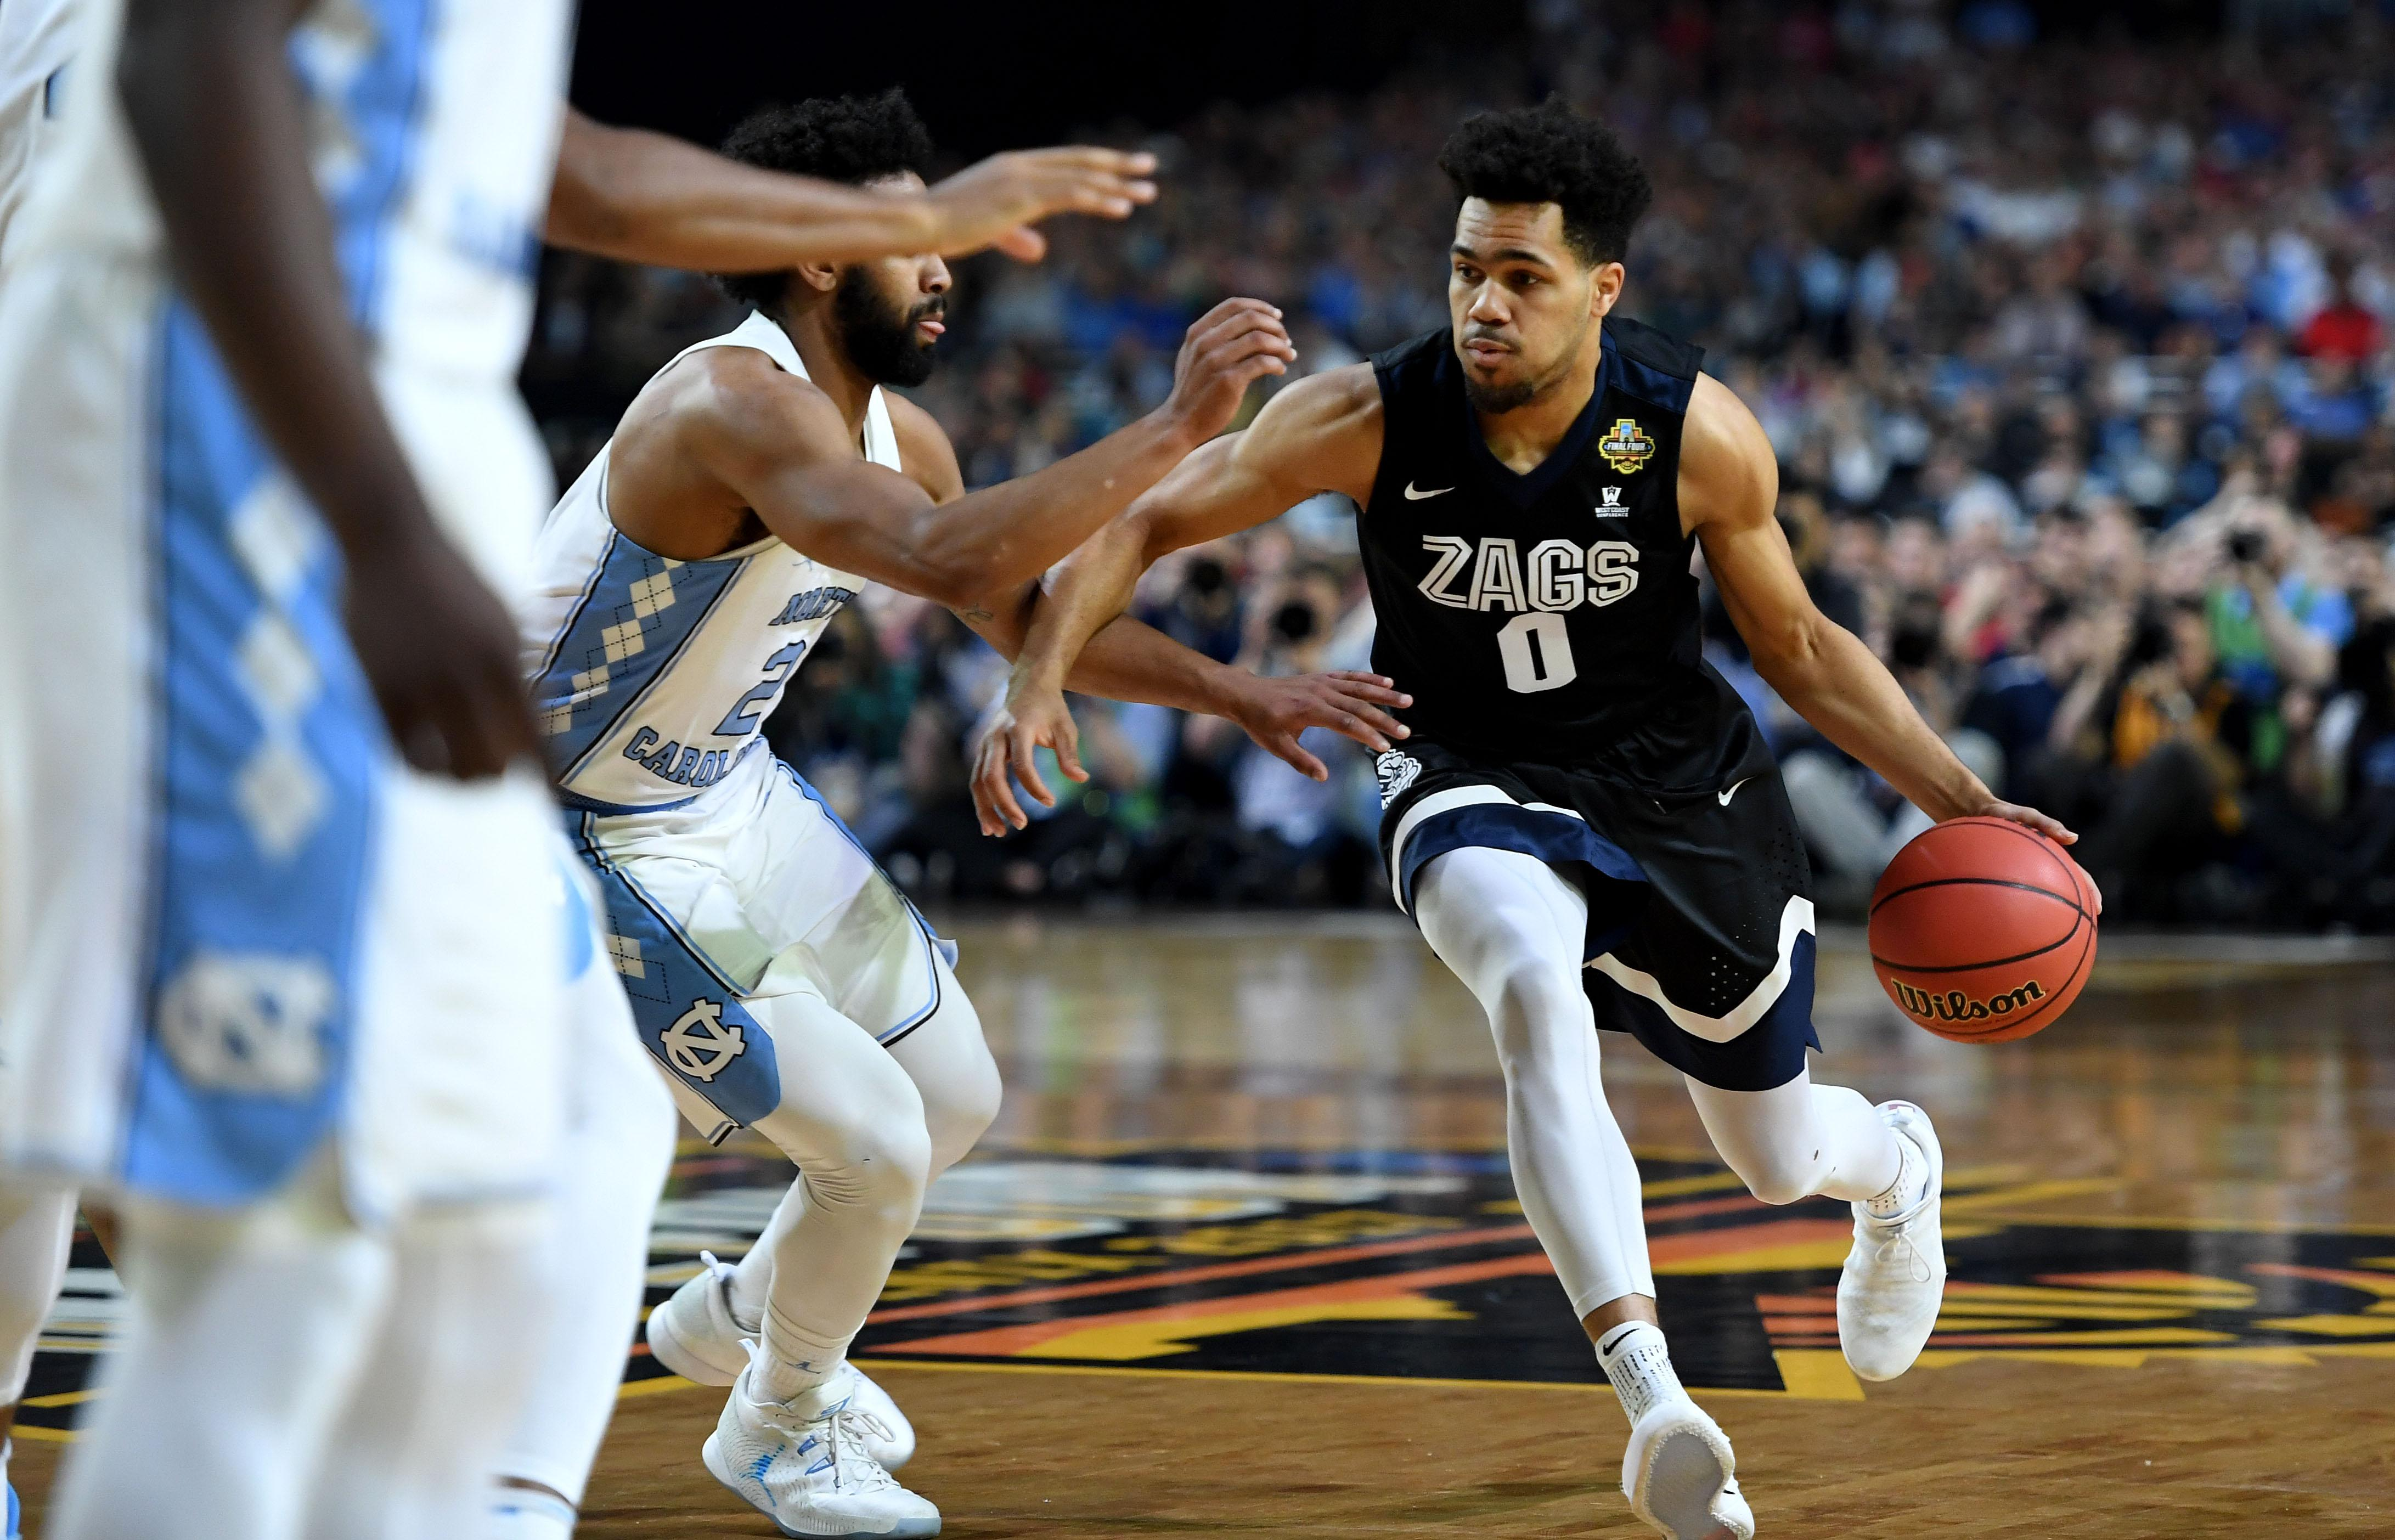 Highlights from the national championship gonzaga vs north carolina - Updates From Glendale During Gonzaga S Loss To North Carolina In Ncaa Championship Game The Spokesman Review